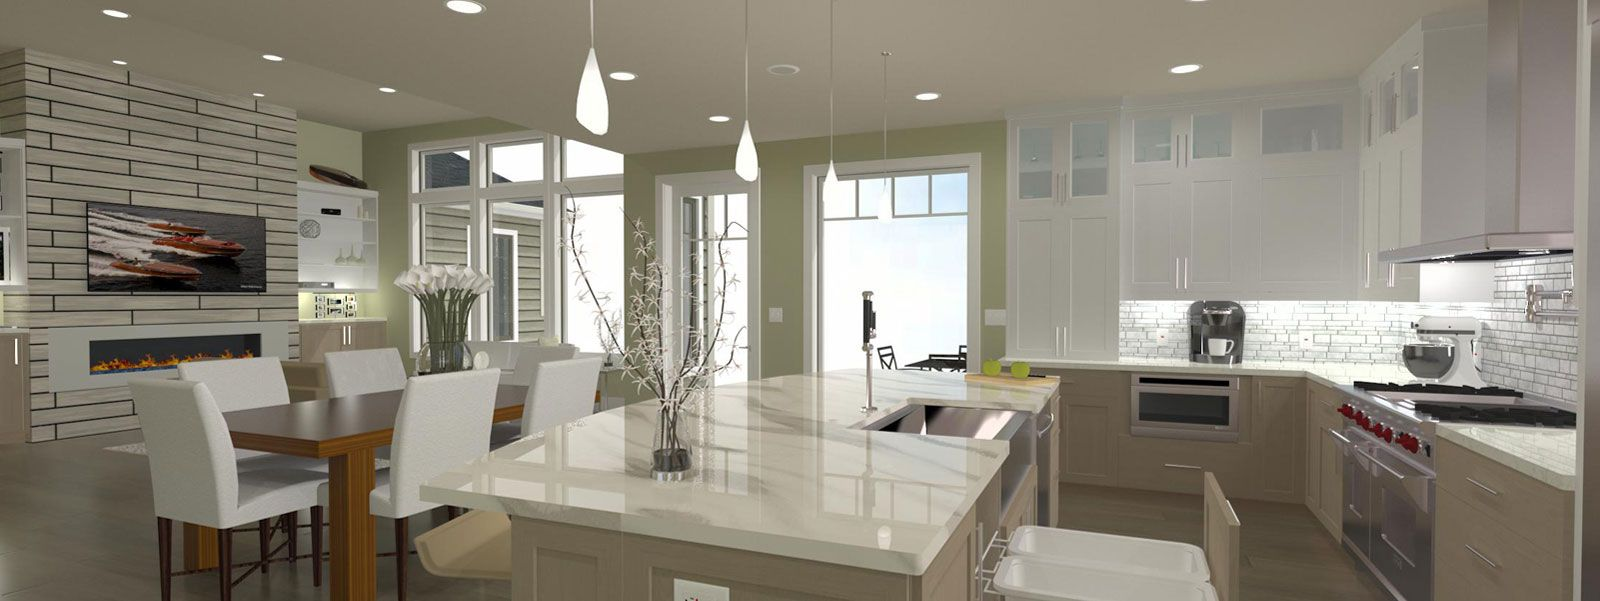 Kitchen And Bath Design Is A Specialty At Chief Architect We